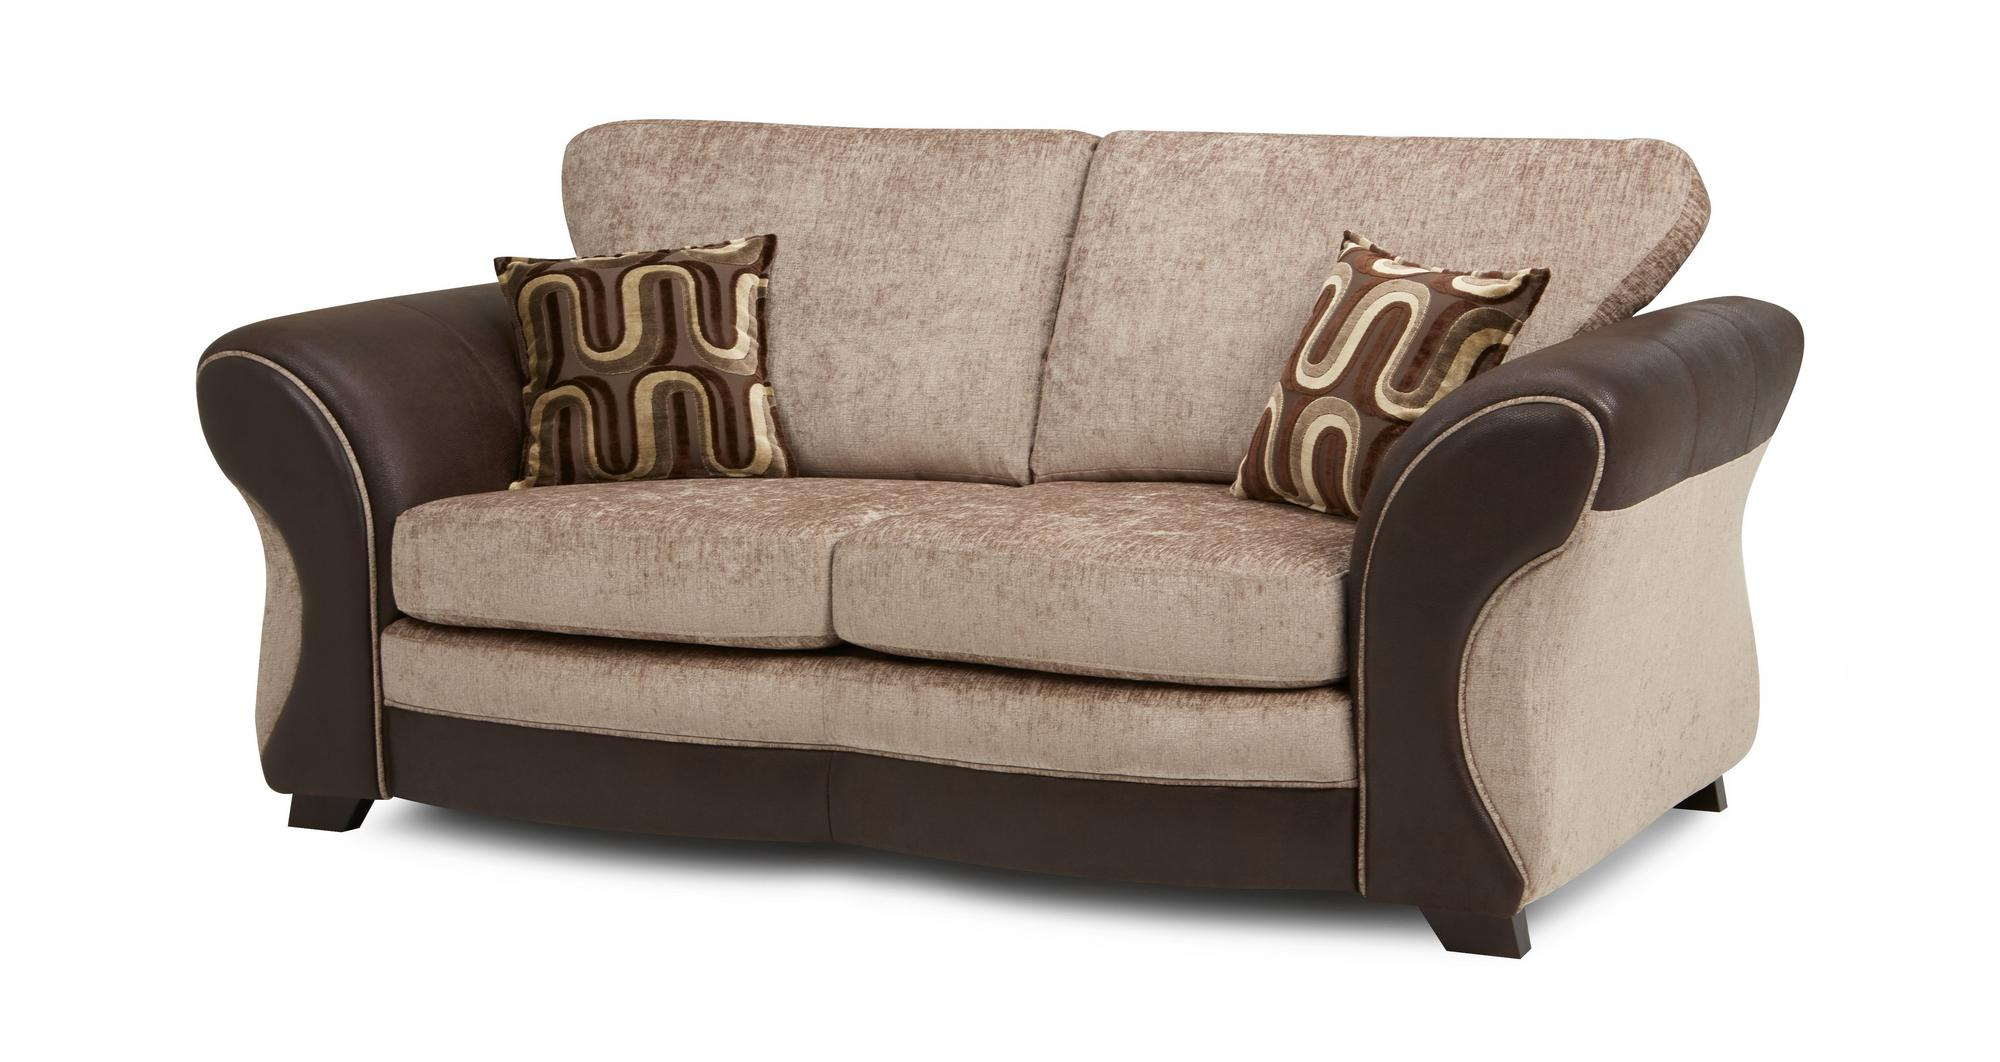 Dfs Croft Mink Brown Fabric Large 2 Seater Deluxe Sofa Bed